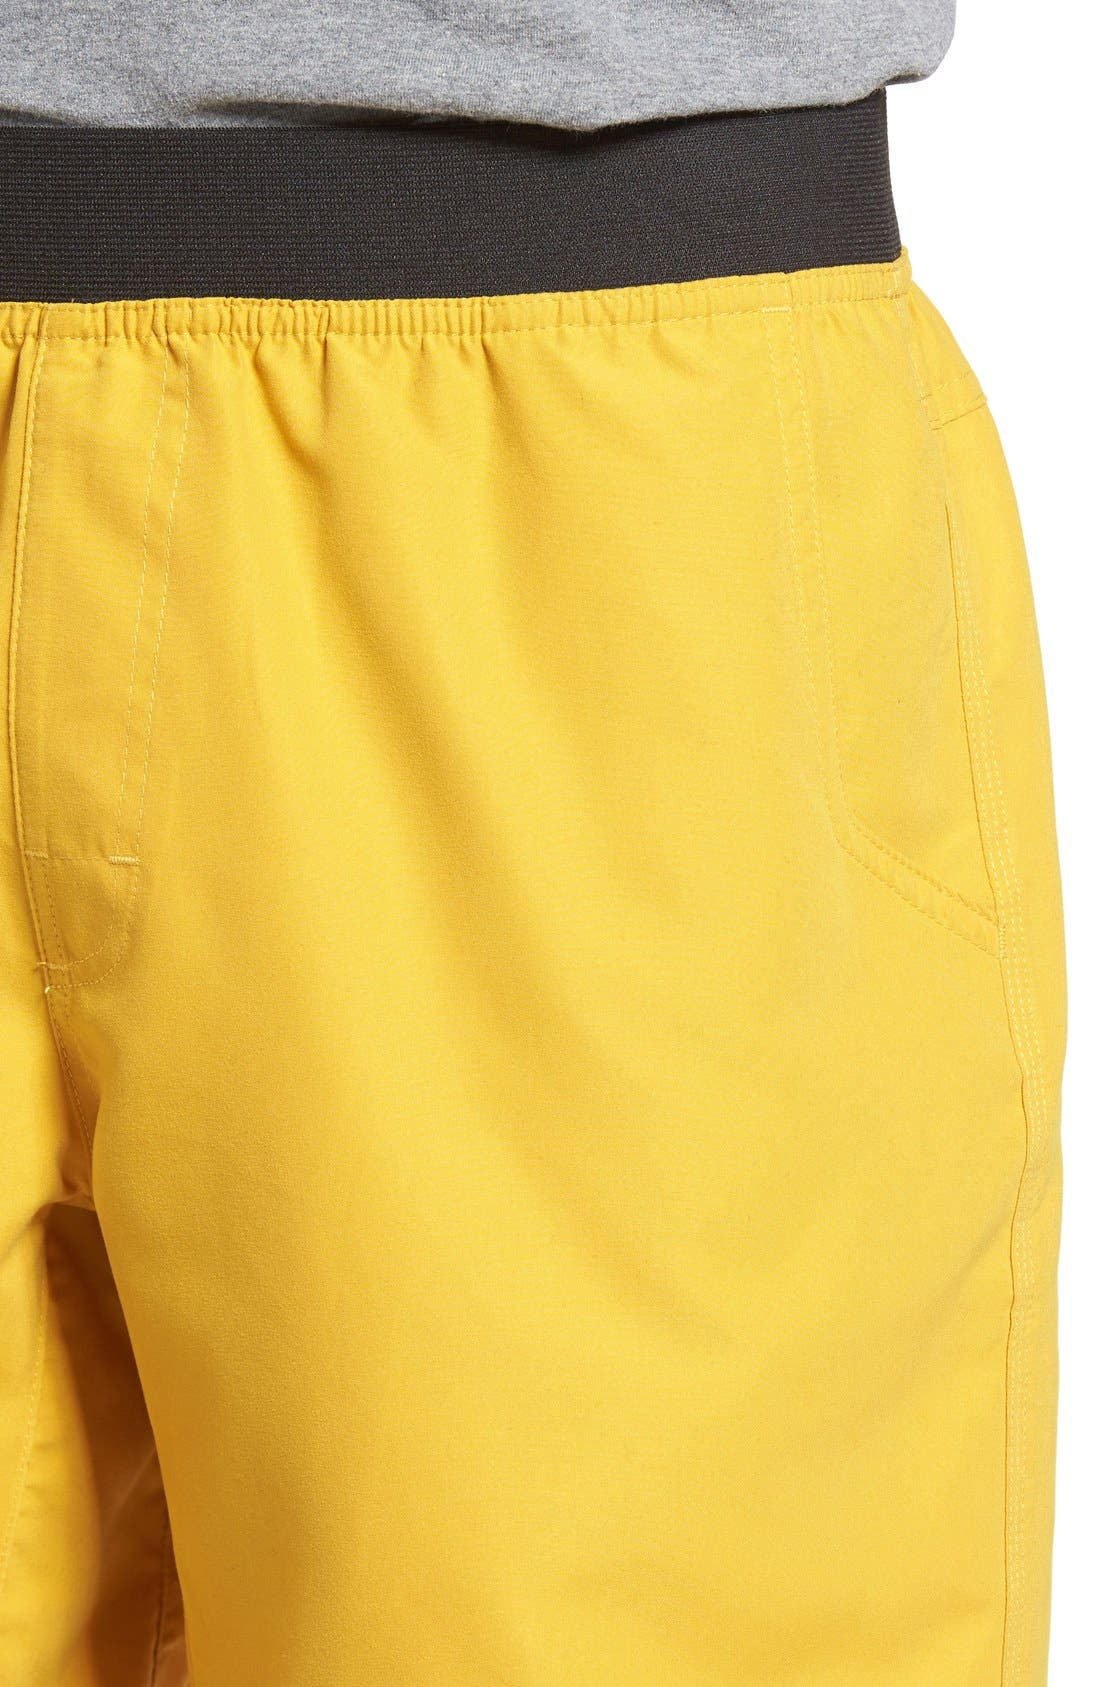 Mojo Shorts,                             Alternate thumbnail 75, color,